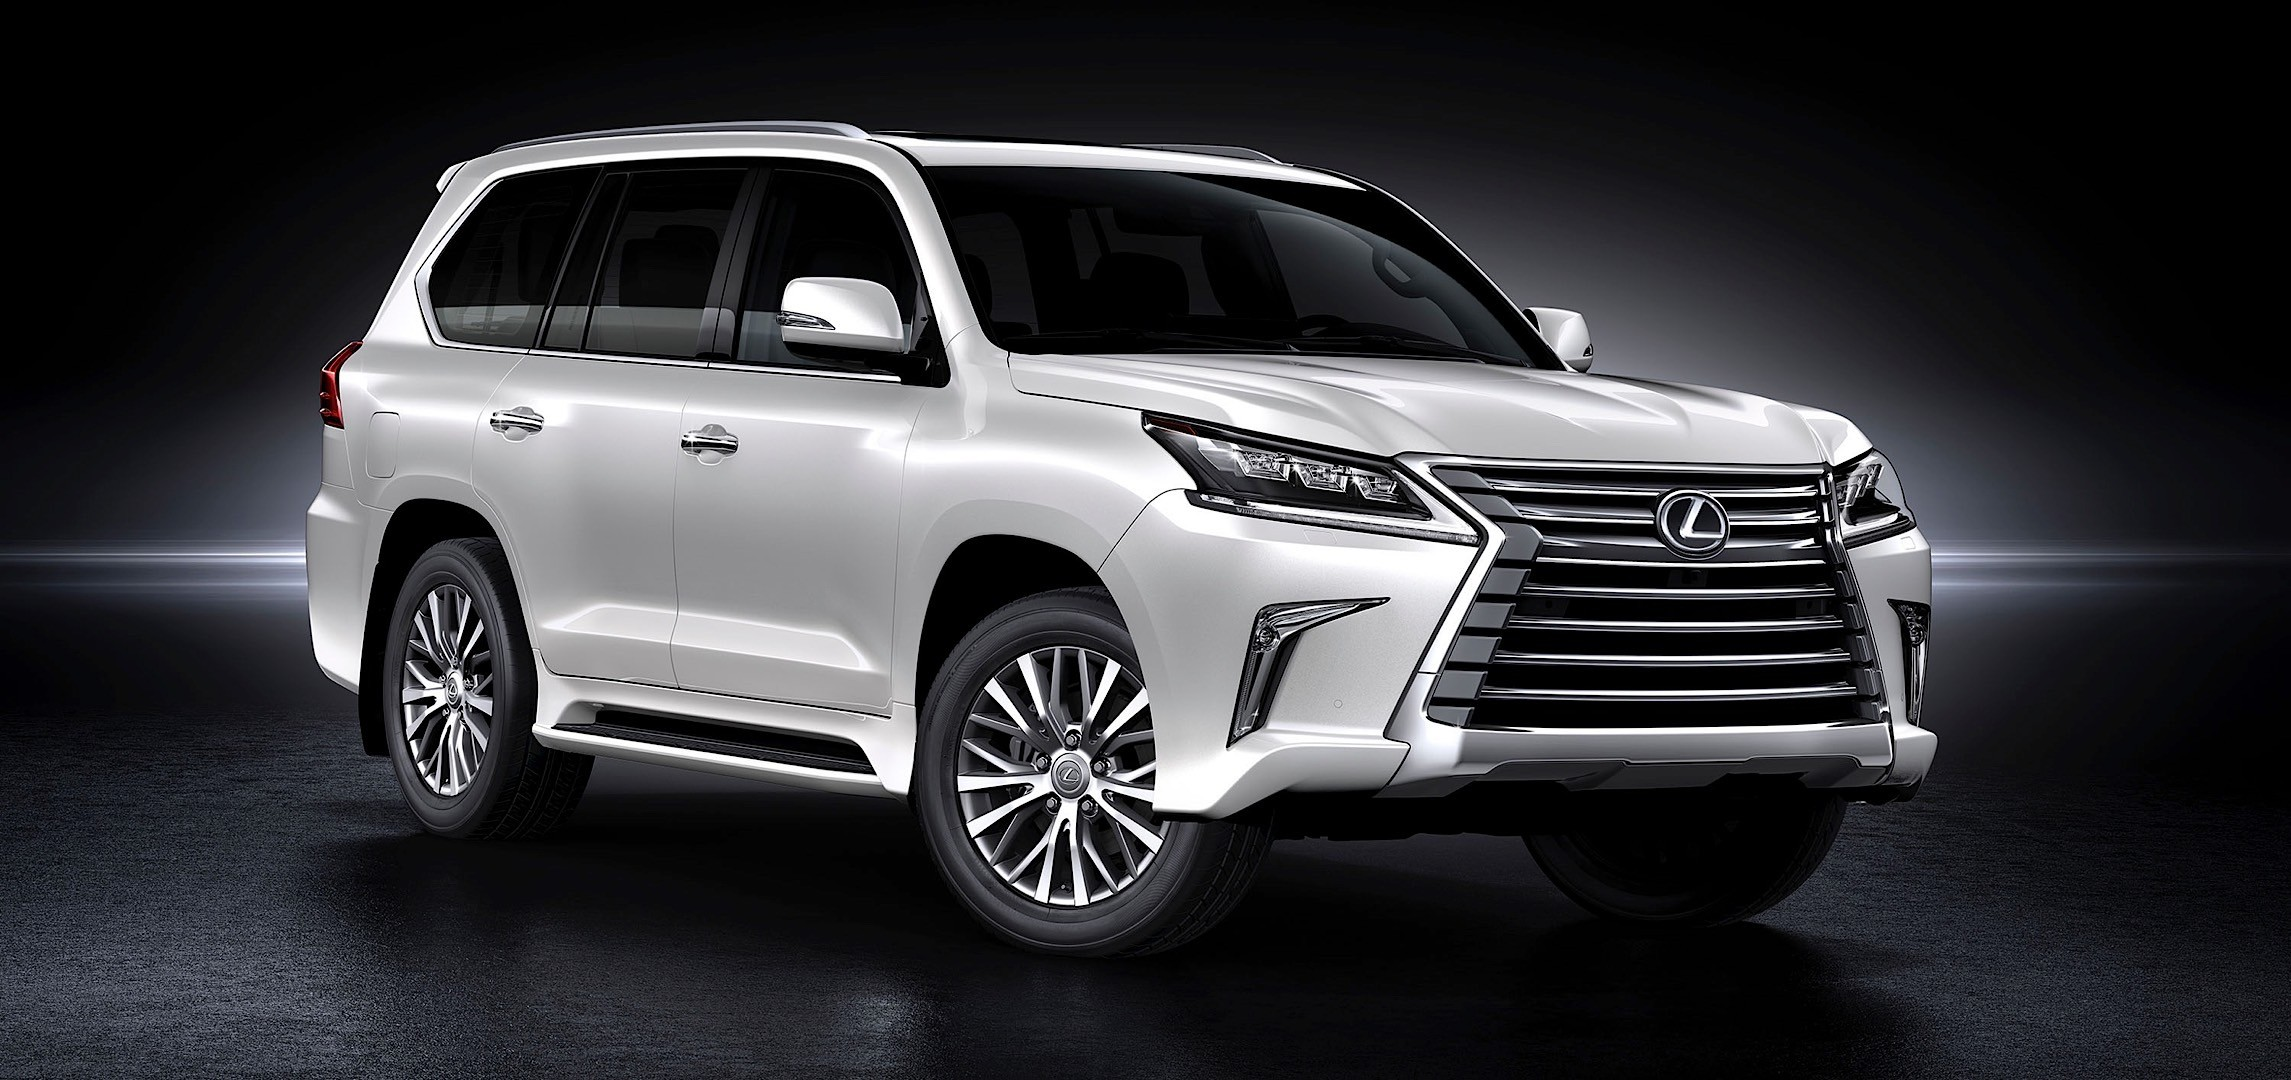 7 Seater Suv 2017 >> 2016 Lexus LX 570 Facelift Shows Up at Pebble Beach Concours d'Elegance - autoevolution